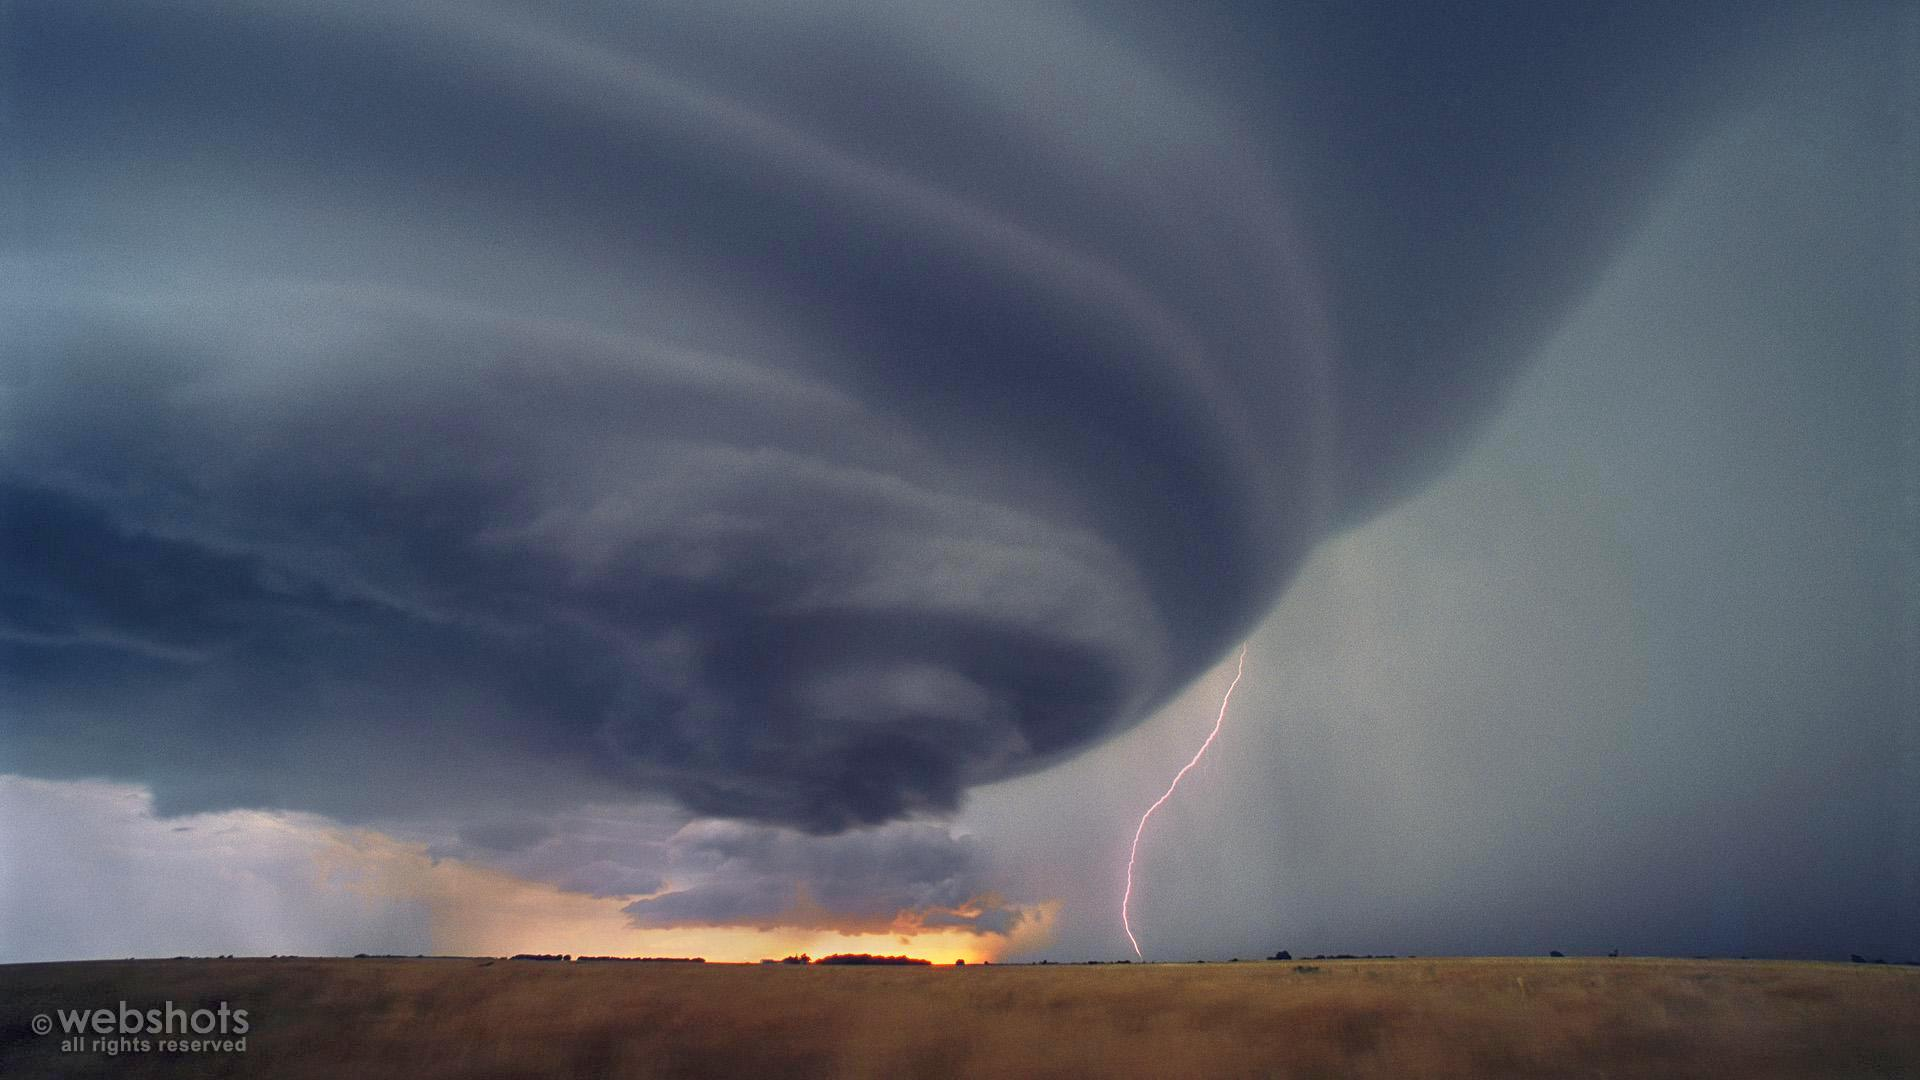 Supercell Thunderstorm Kansas